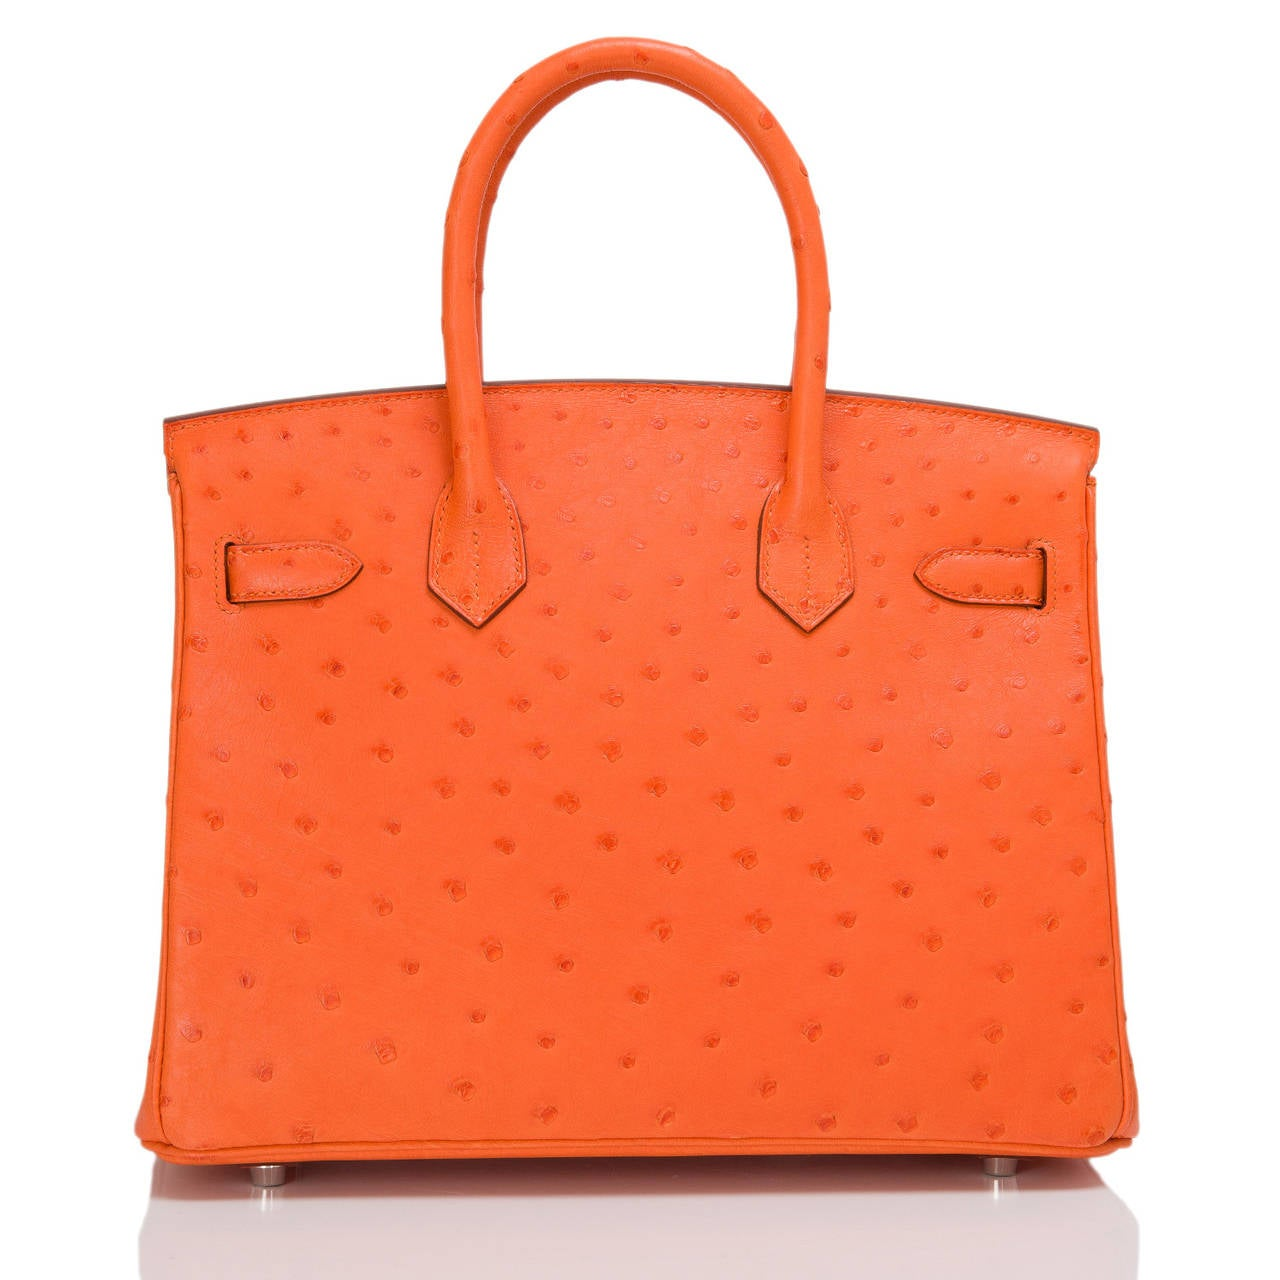 Hermes Tangerine Ostrich Birkin 30cm In New never worn Condition For Sale In New York, NY